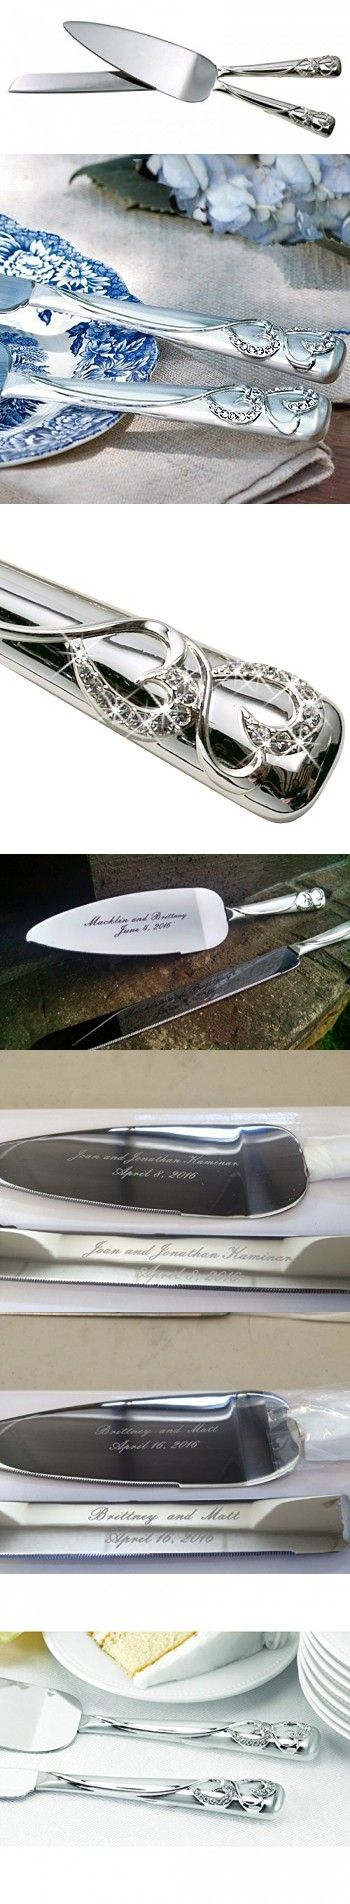 Personalized Engraved Customized Hortense B. Hewitt Wedding Accessories Sparkling Love Silver-Plated Cake Knife and Server Set